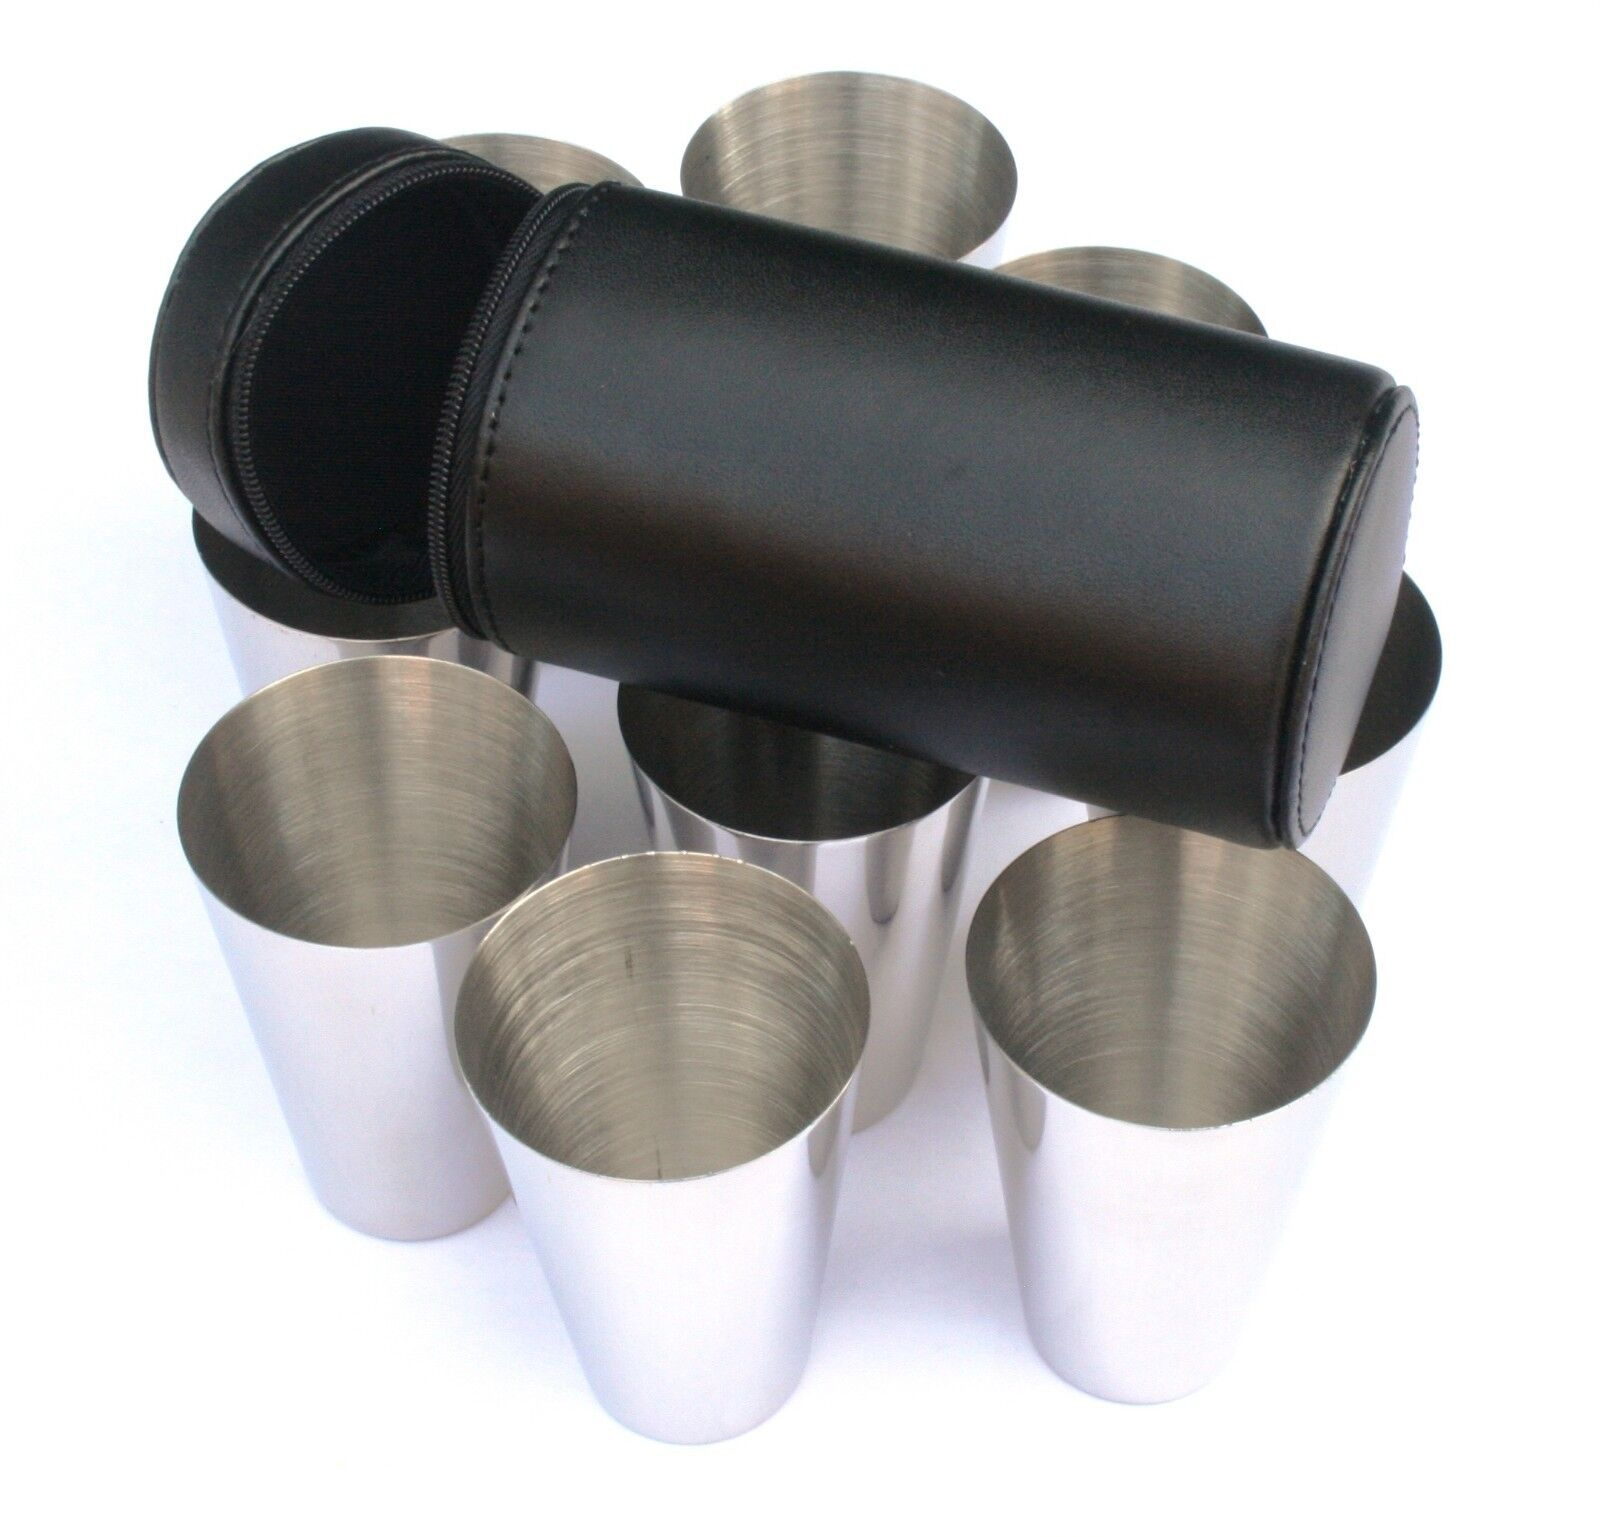 Stooping Falcon Peg Position Finder Finder Finder Numbered Cups 1-10 Black Leather Case bcffbb